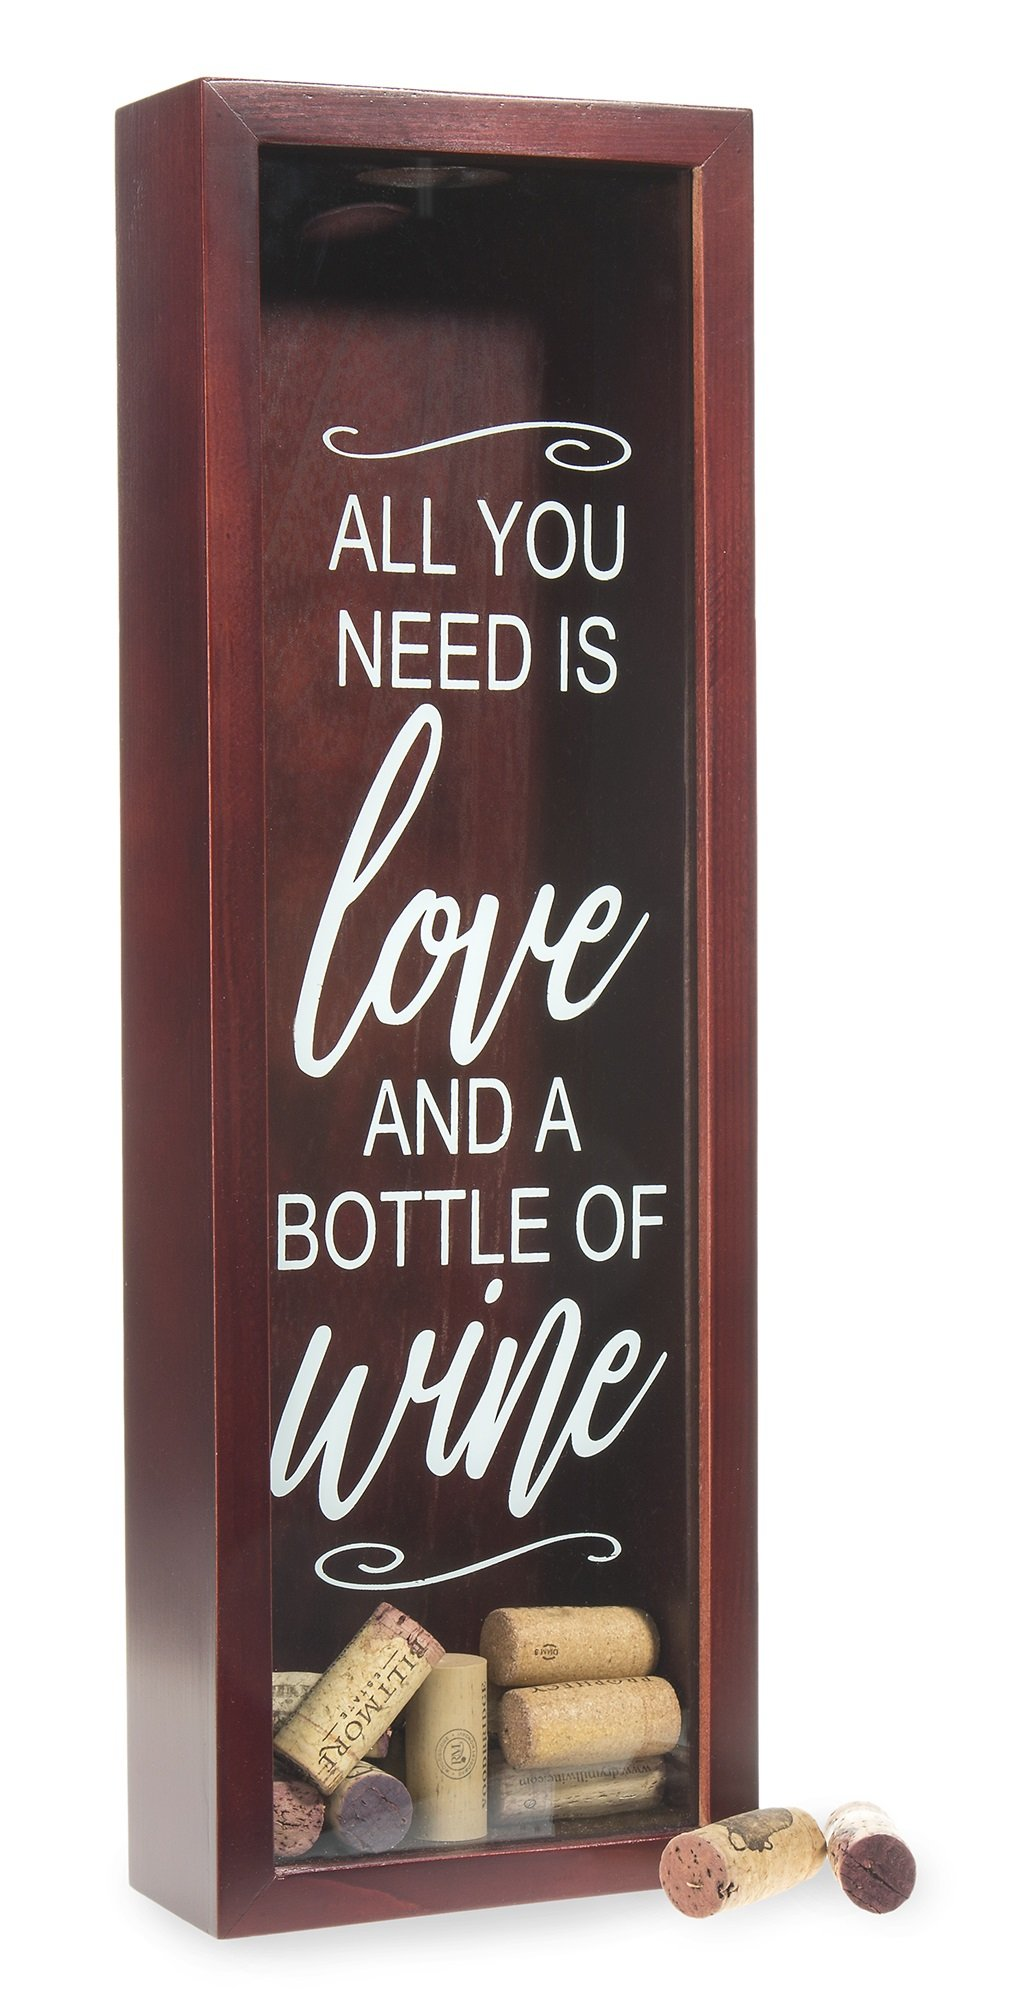 Wine Cork Shadow Box - Holds Over 70 Corks - 18'' x 6'' - Wood With Beautiful Cherry Red Stain - Free Stand or Wall Hanging - ''All You Need is Love and a Bottle of Wine'' - Cork Holder, Wine Gift